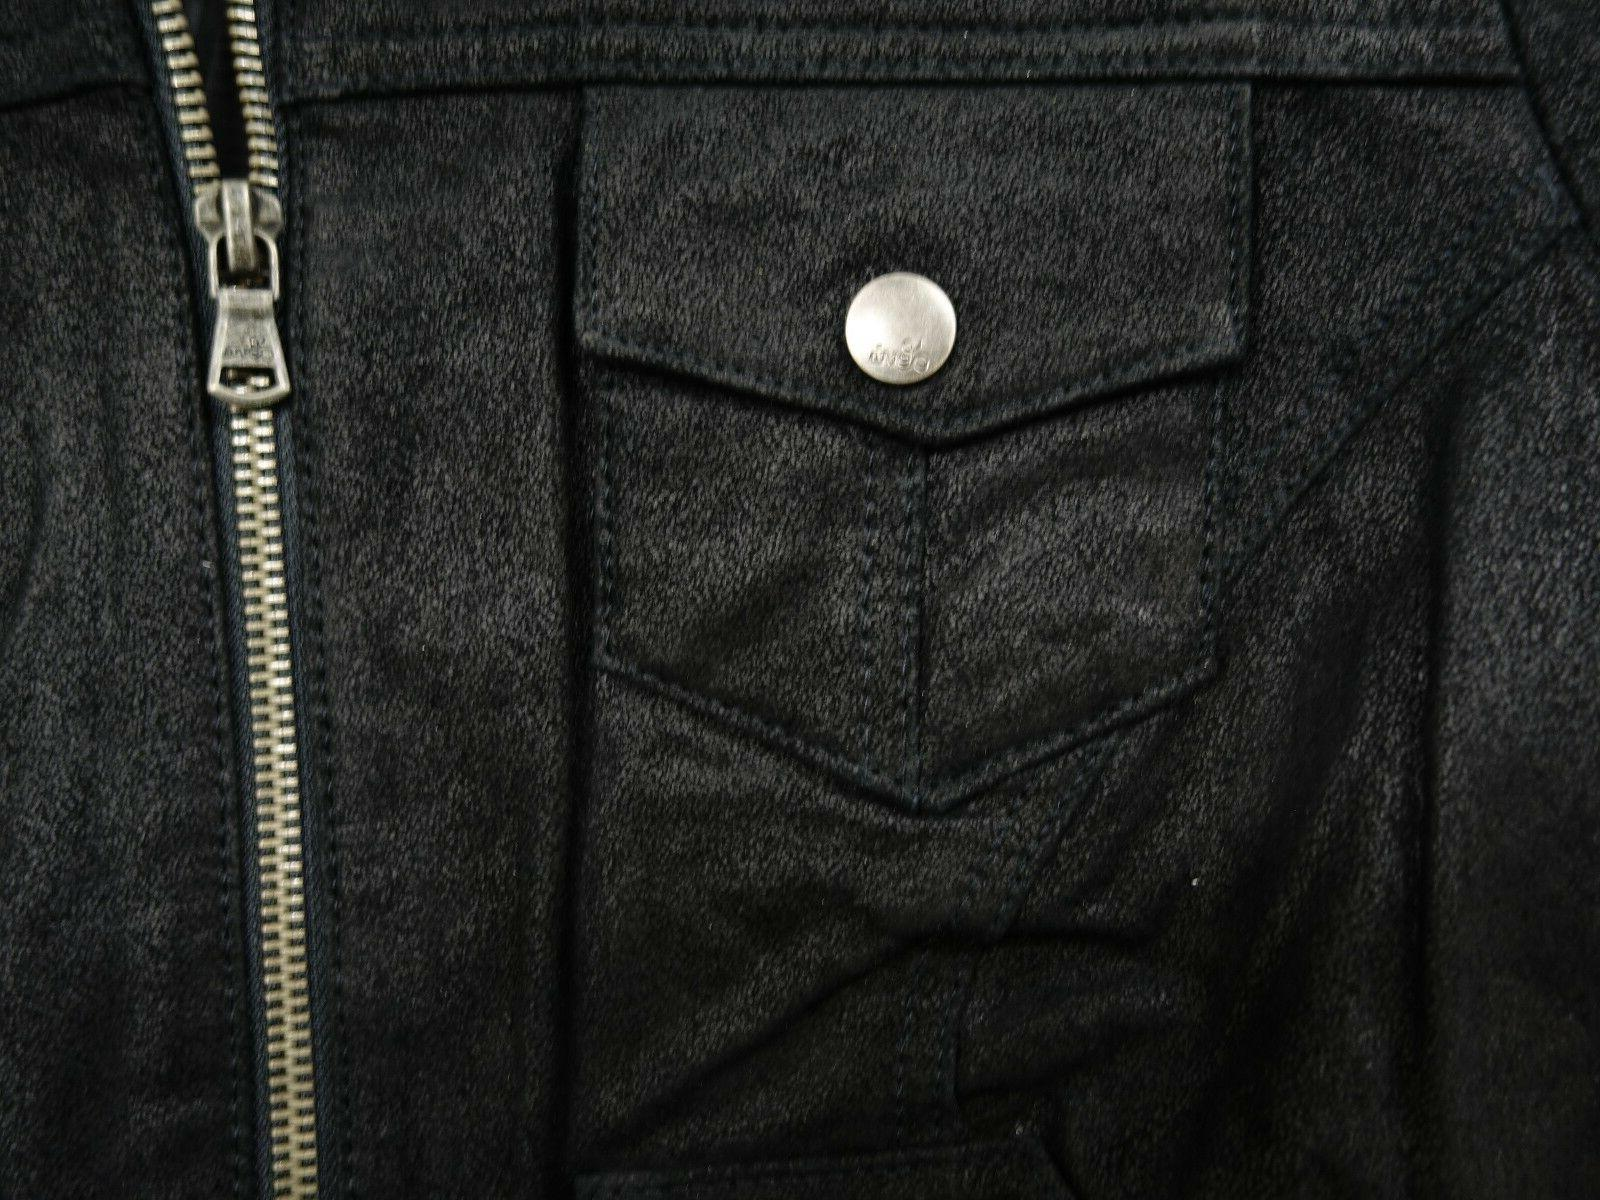 New Levi's Women's Cropped Leather Petite Regular Size XS-2XL